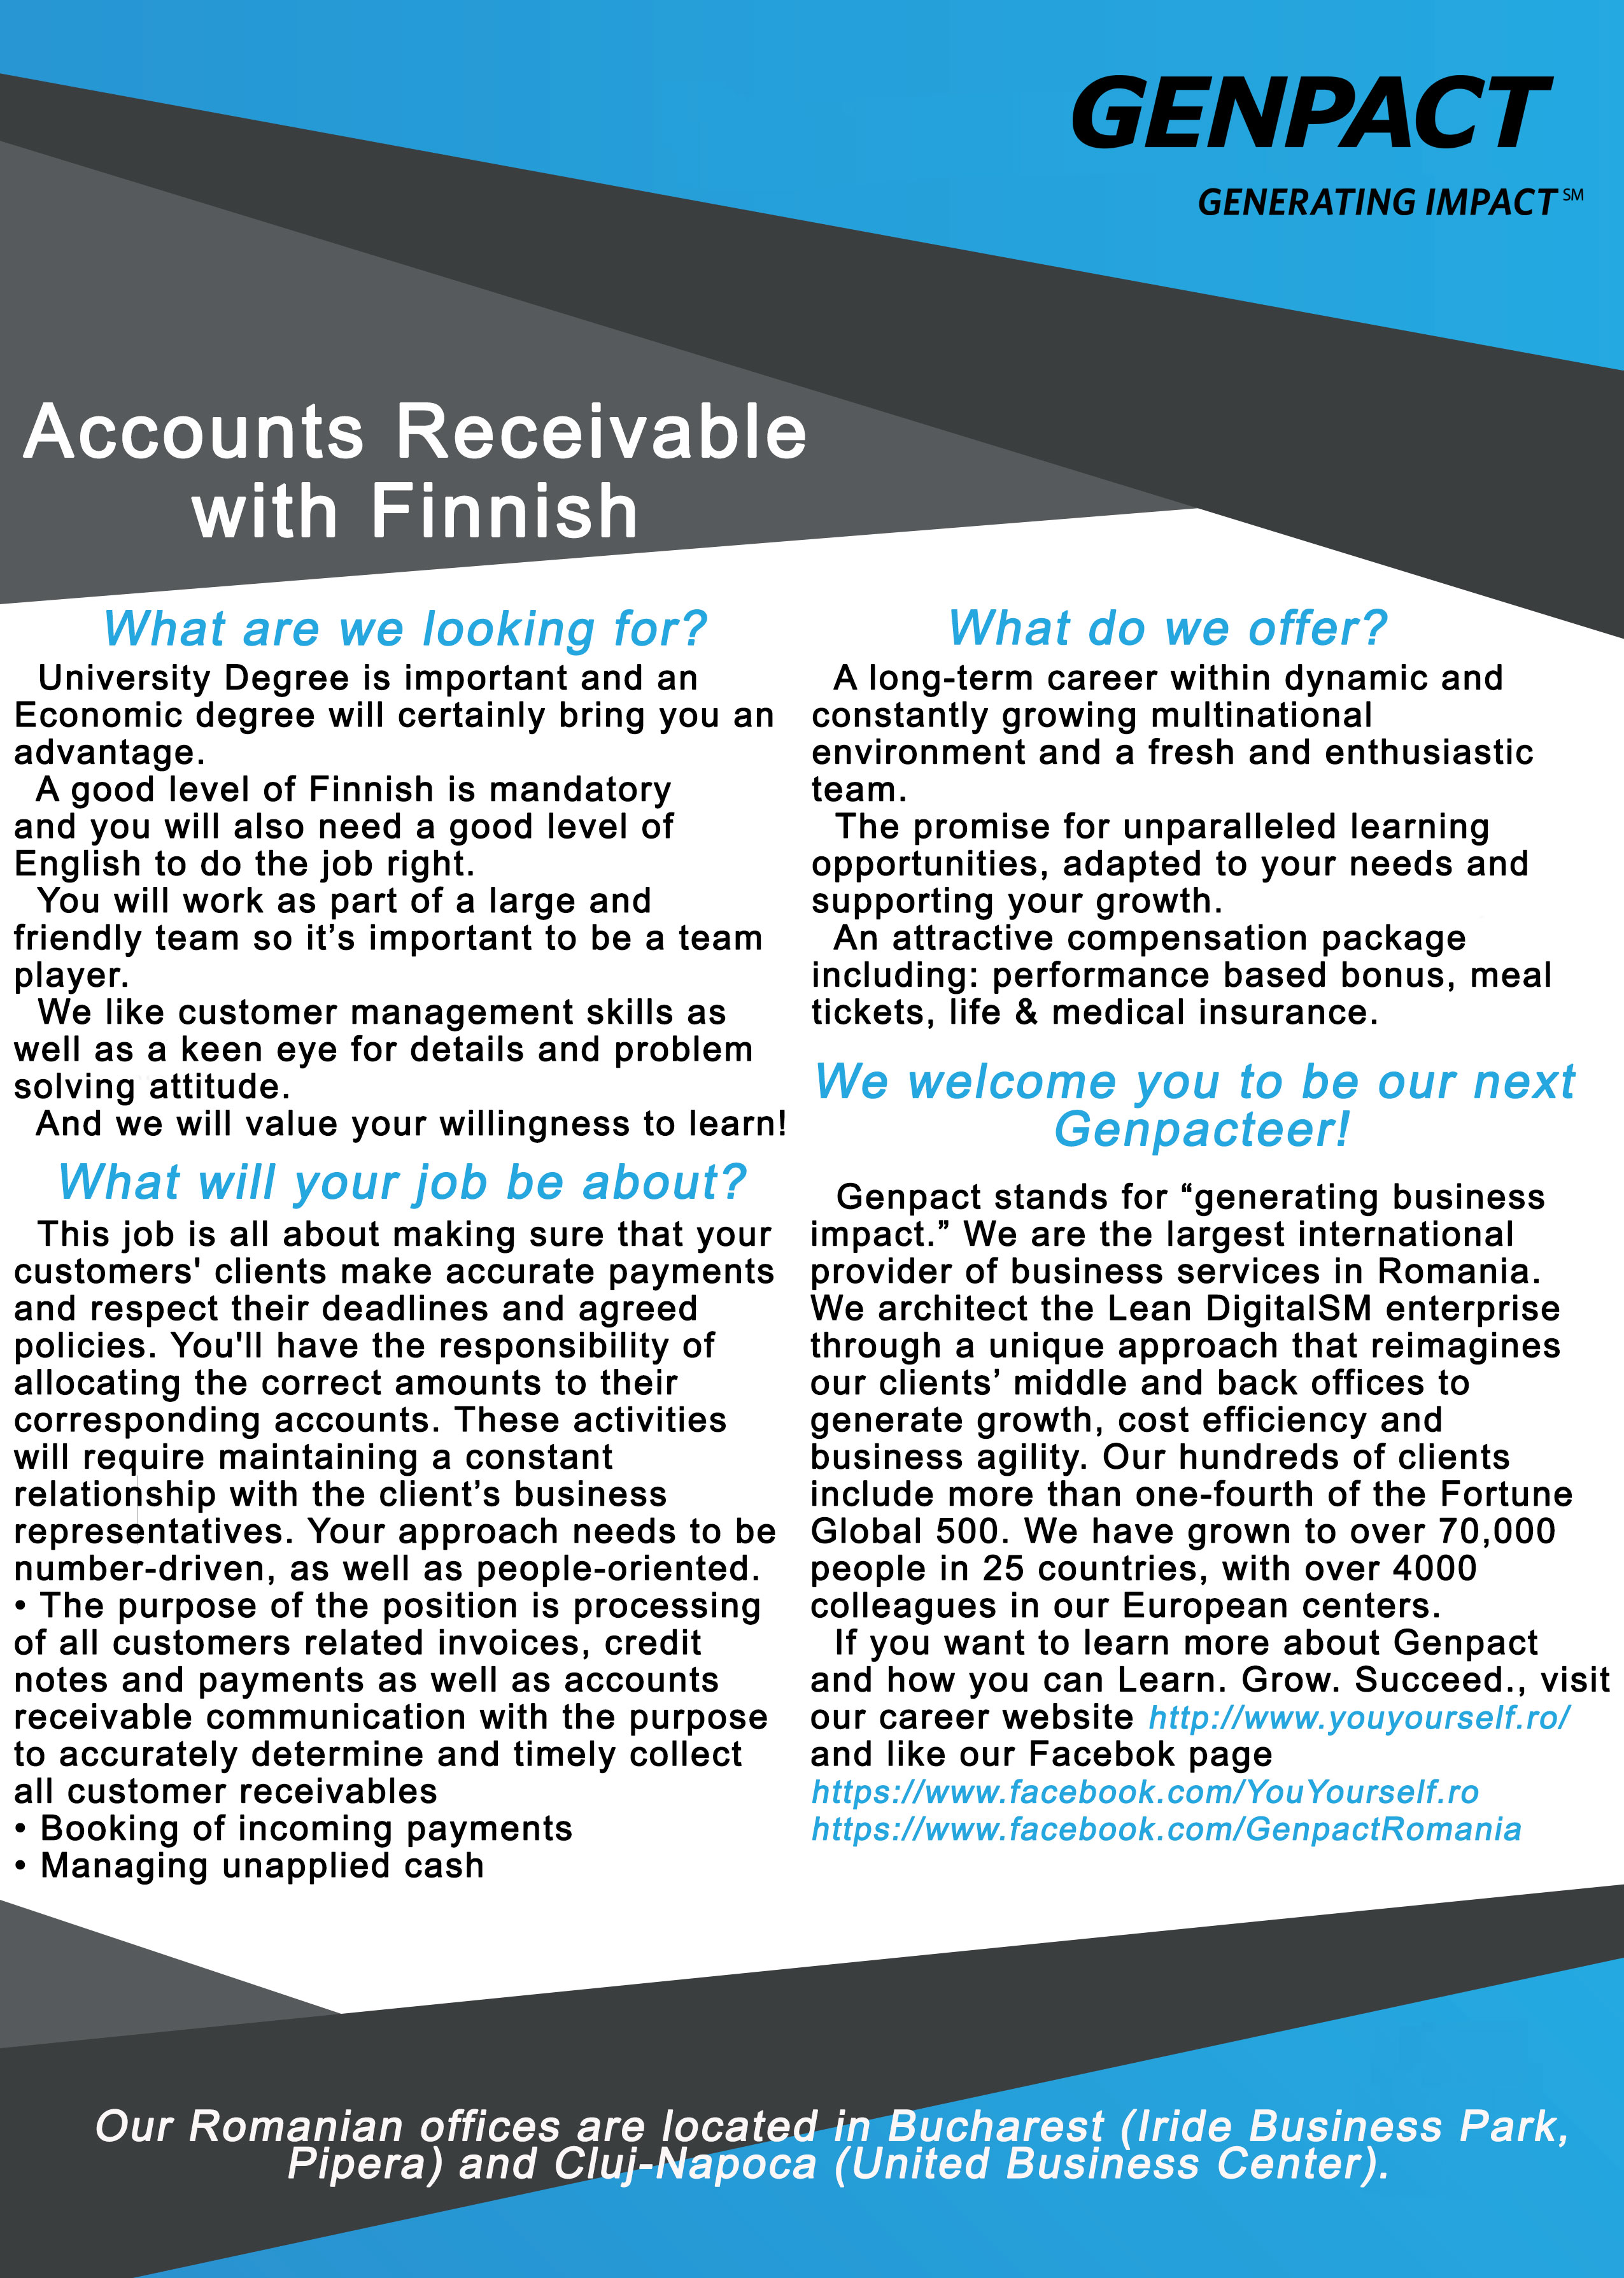 Accounts Receivable with Finnish